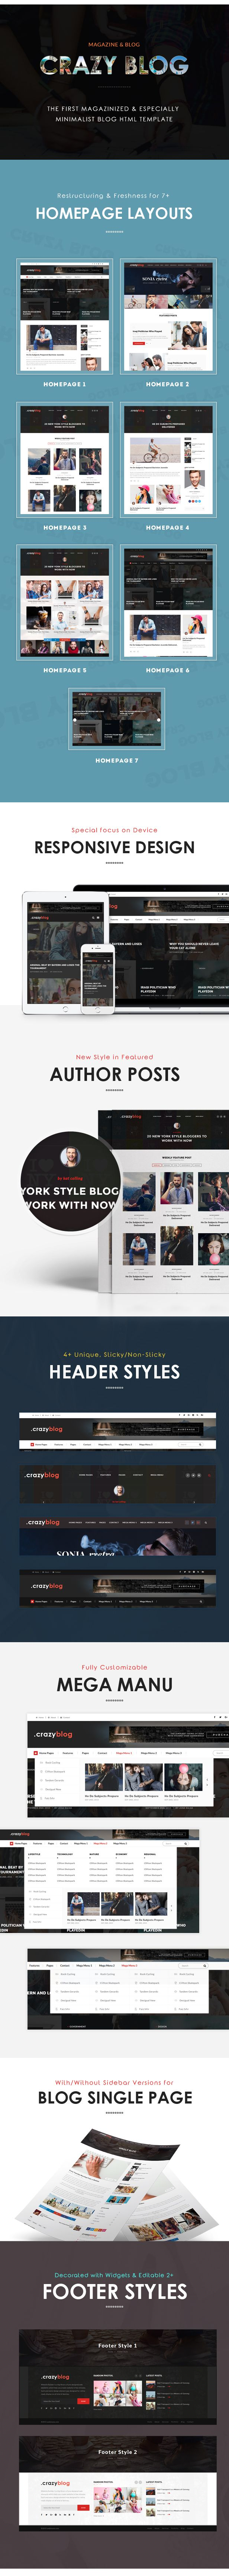 CrazyBlog - Blog HTML Template for Ads Businesses (Personal) Nulled ...